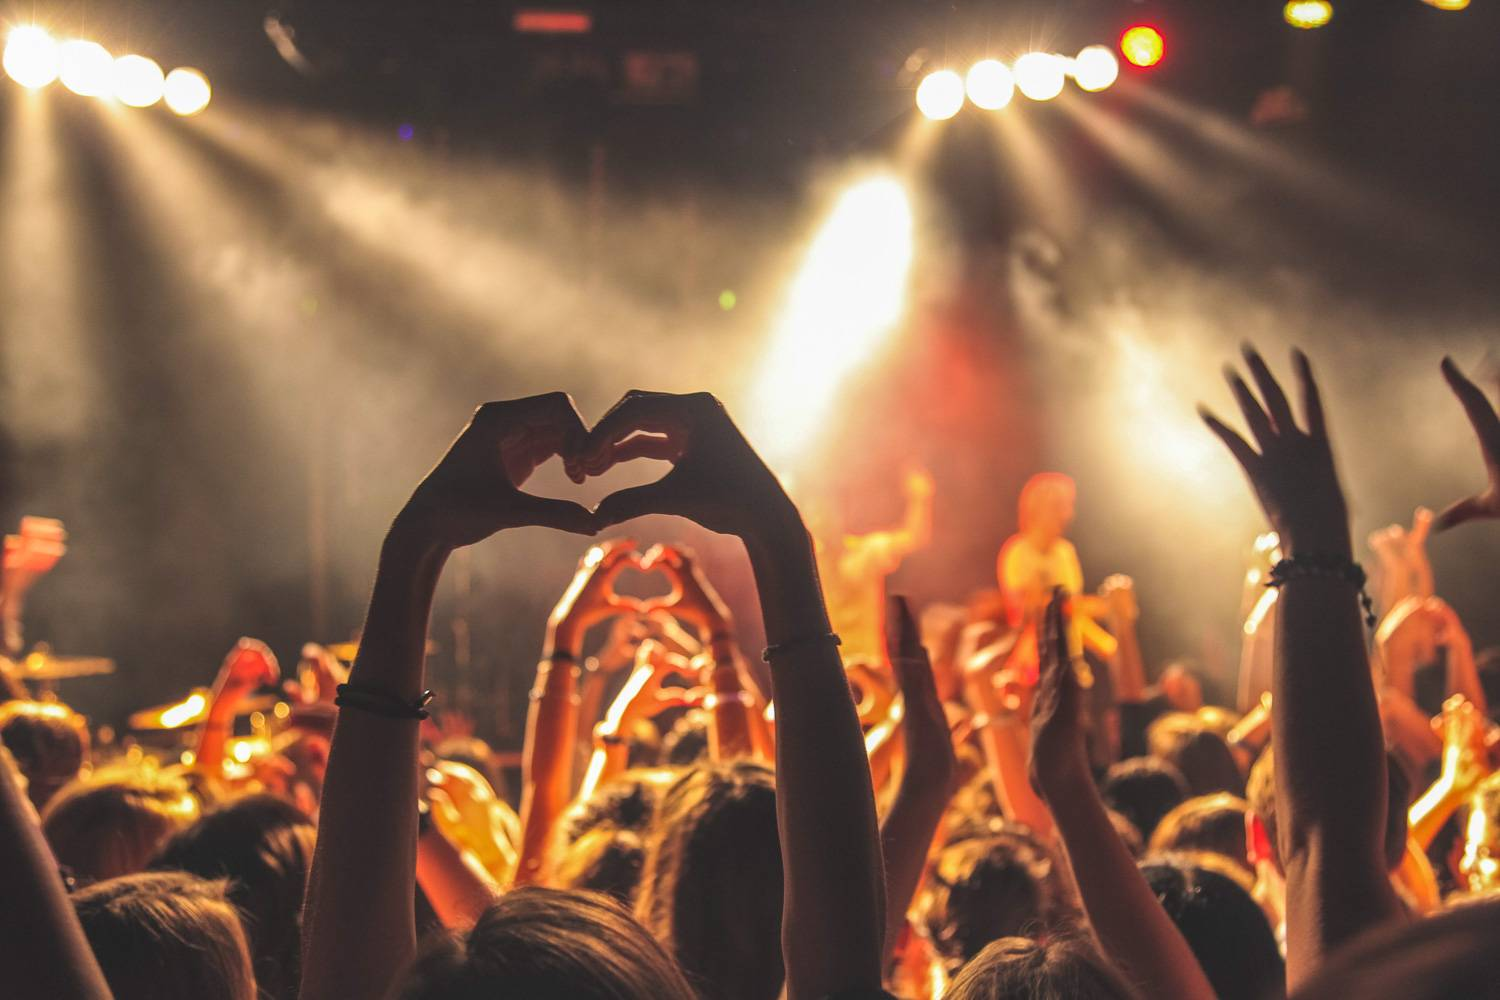 Image of a person at a concert making a heart shape with their hands.